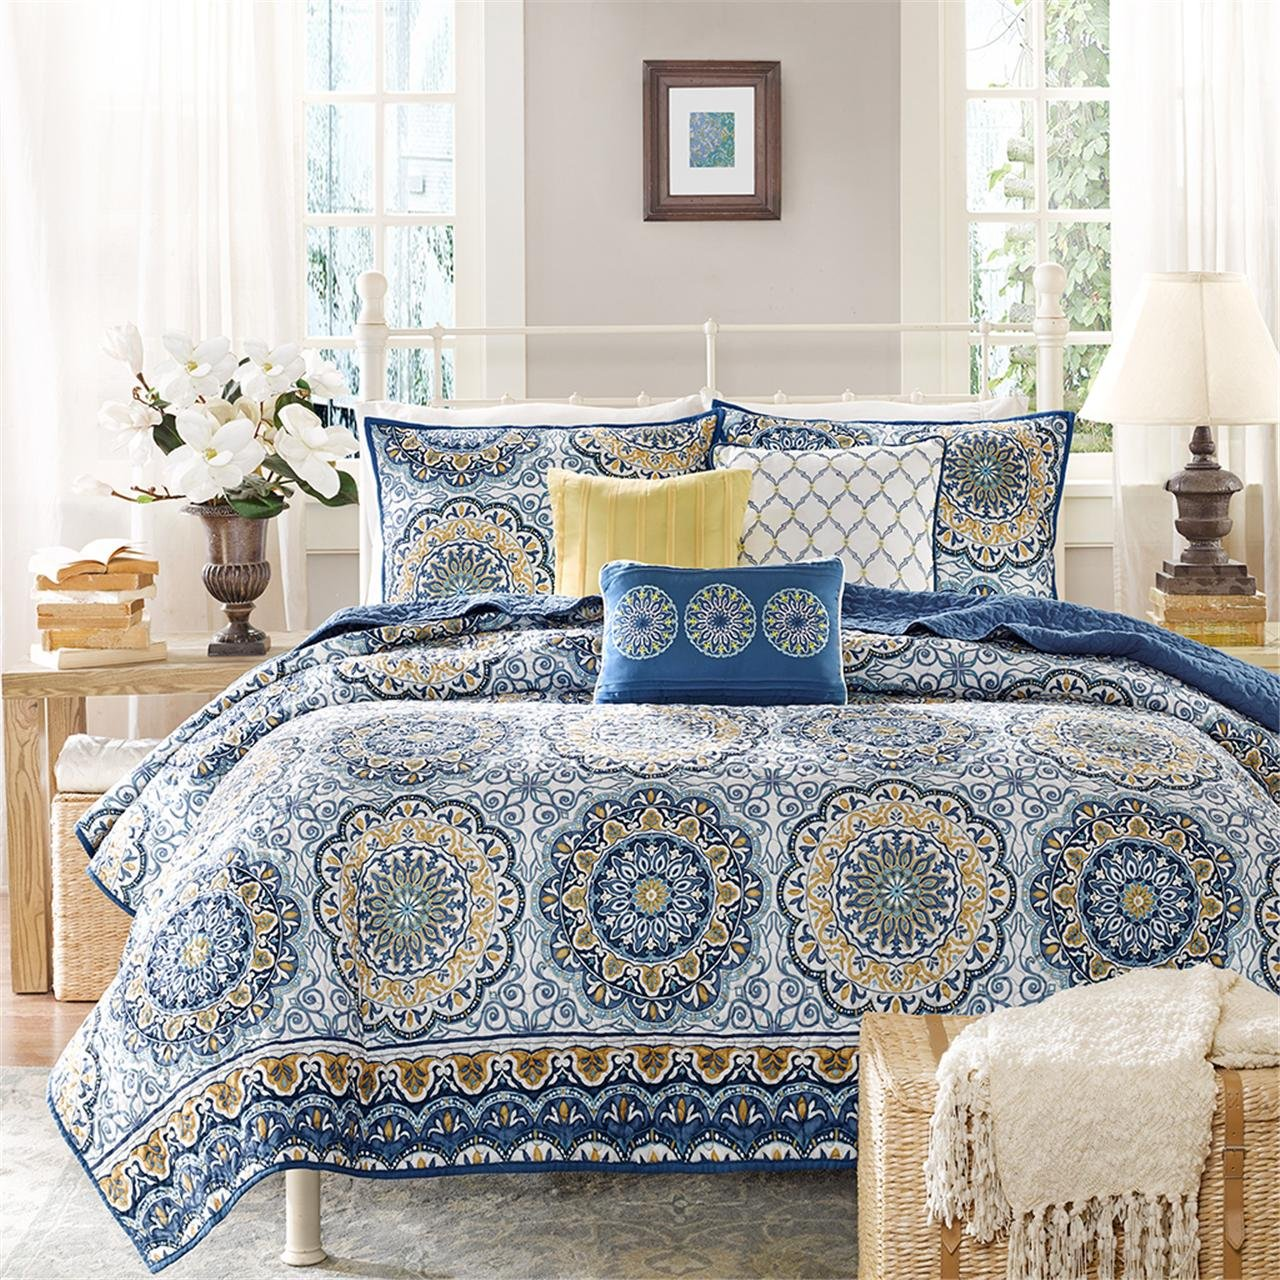 Amazon.com: Madison Park   Tangiers 6 Piece Coverlet Set   Blue   Cal King    Medallion Pattern   Includes 1 Coverlet, 2 King Shams, 3 Decorative  Pillows: ...